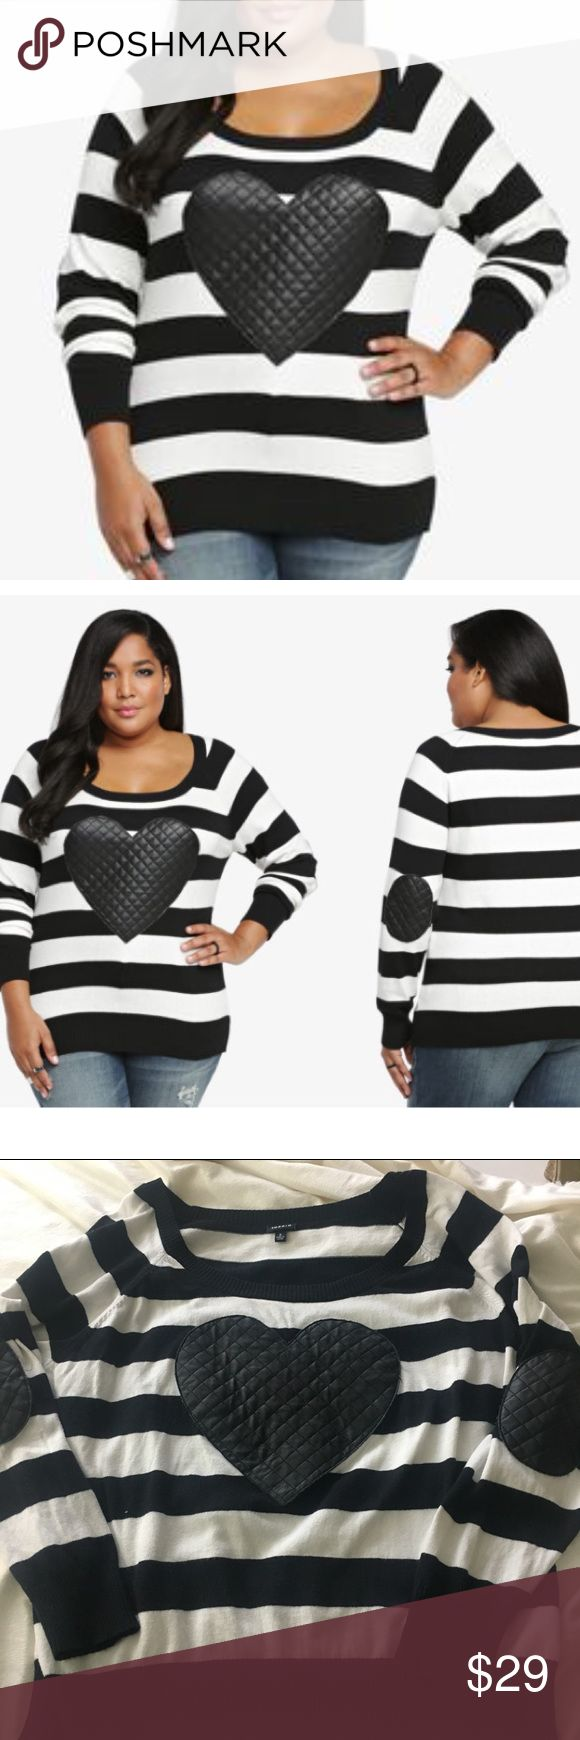 Torrid Faux Leather Heart Sweater Plus Sz 3X So soft in cashmere-like cotton, this faux leather heart plus size sweatshirt from Torrid gives cozy a fun twist. This black and white striped pullover cops an attitude with a quilted faux leather heart on the front and quilted faux leather elbows. Pair it with skinny jeans or a faux leather skater skirt and boots for the perfect Fall look. torrid Sweaters Crew & Scoop Necks